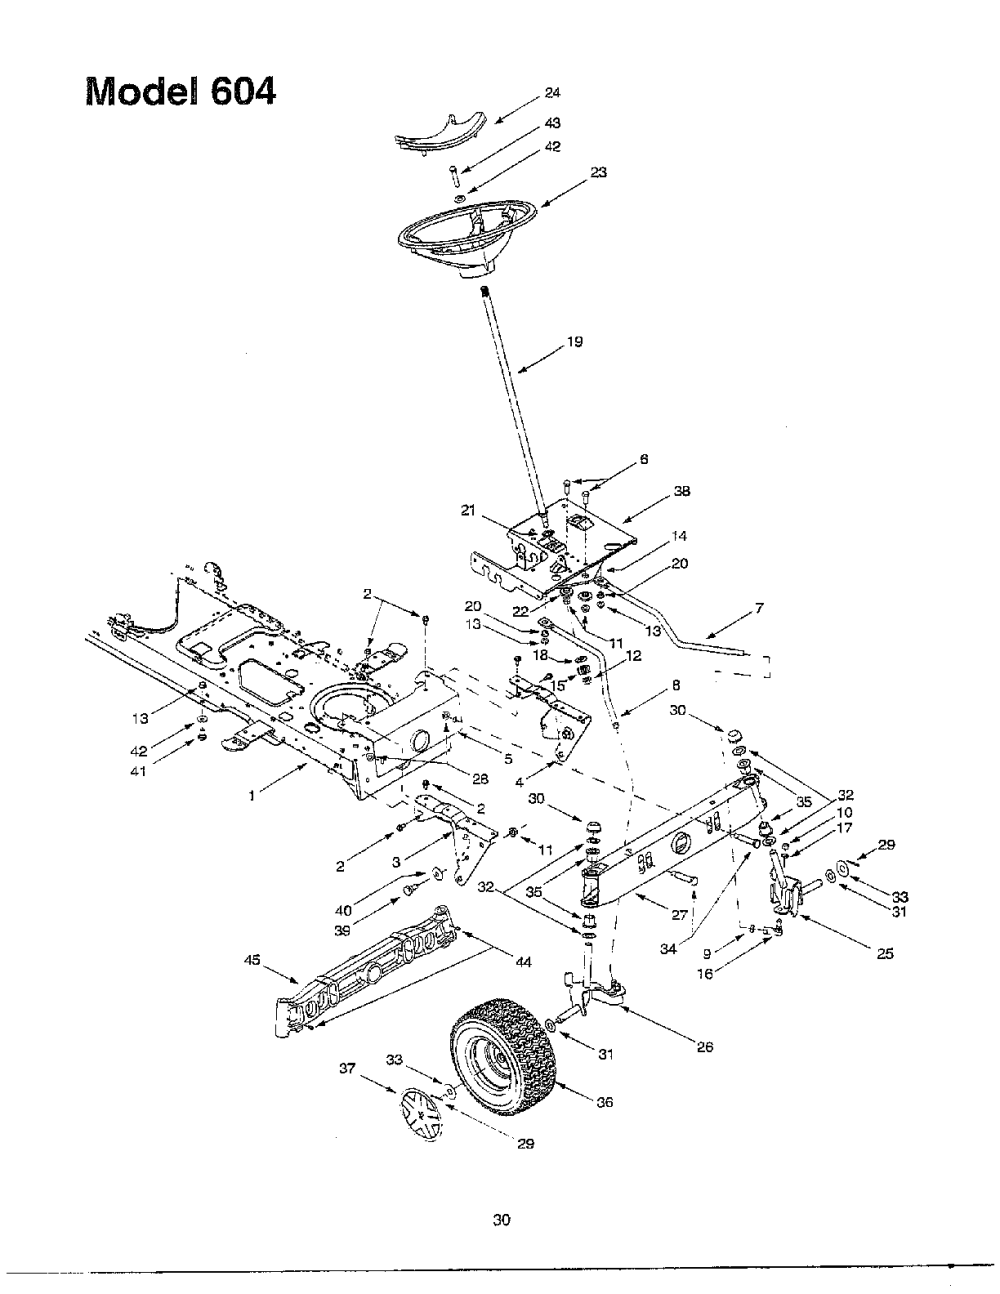 medium resolution of looking for mtd model 604 front engine lawn tractor repairmtd 604 steering assembly diagram